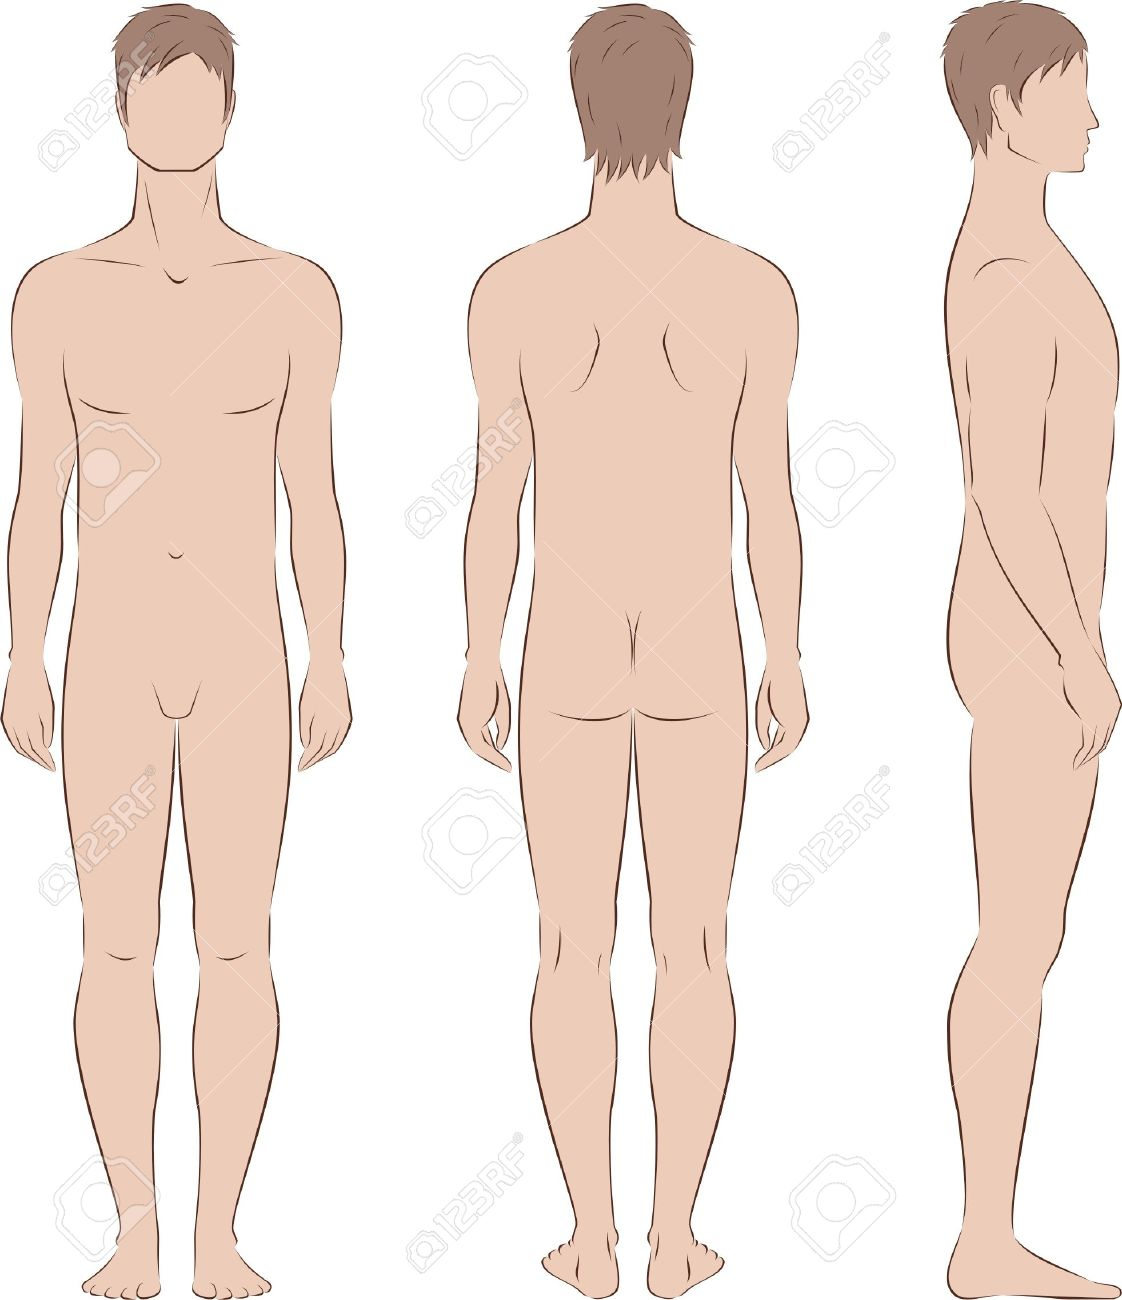 illustration of men s figure  Front, back, side views  Silhouettes Stock Vector - 20075054